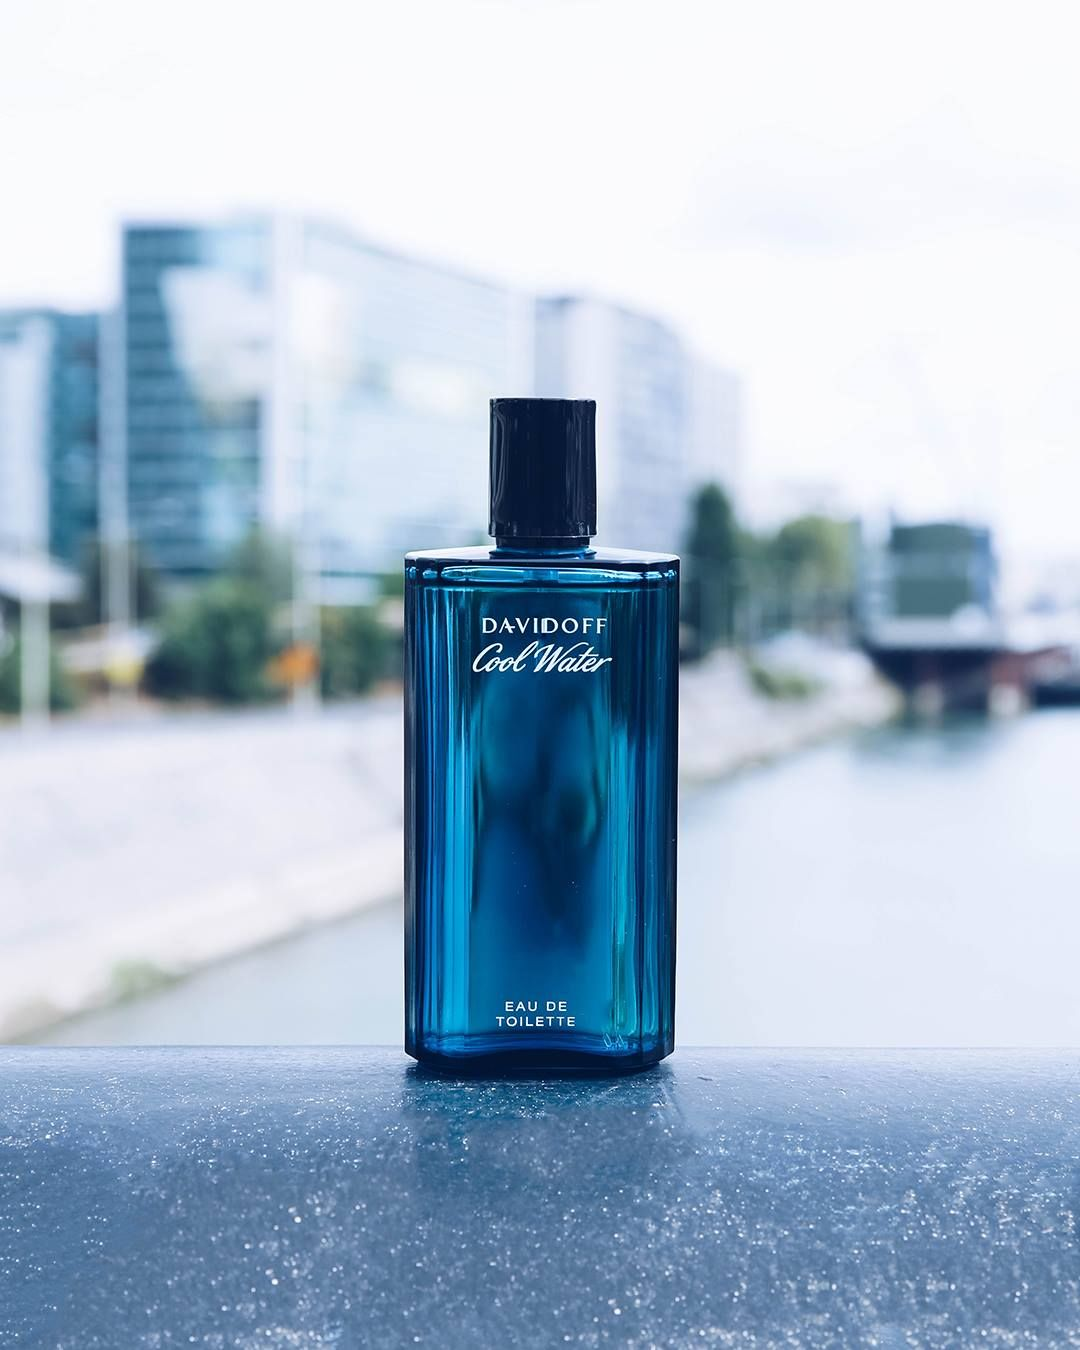 Get Up And See Things Differently With Davidoff Cool Water